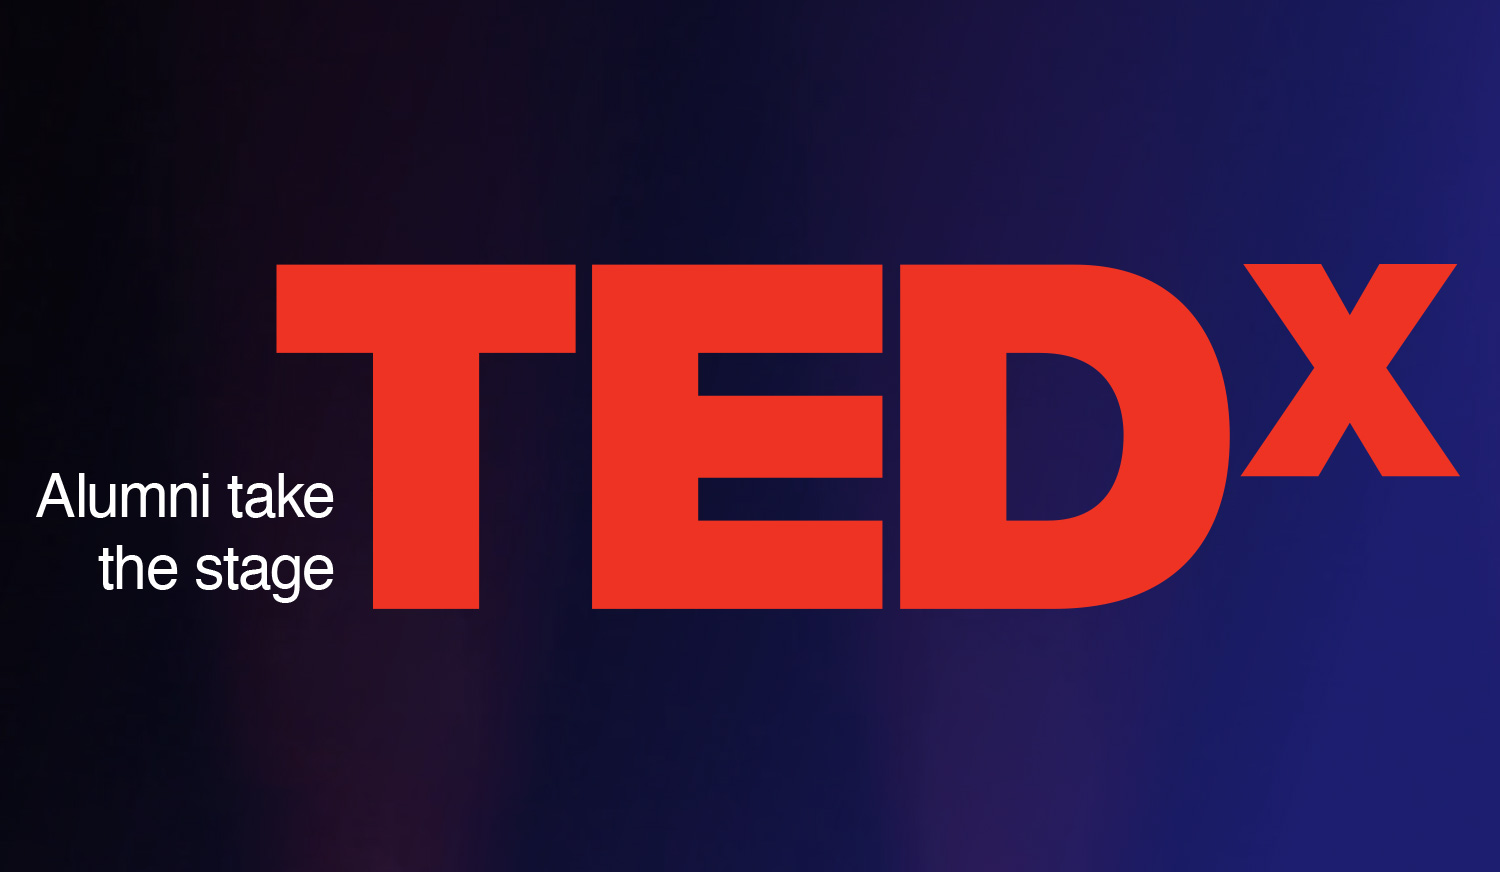 Alumni take the stage: TEDx